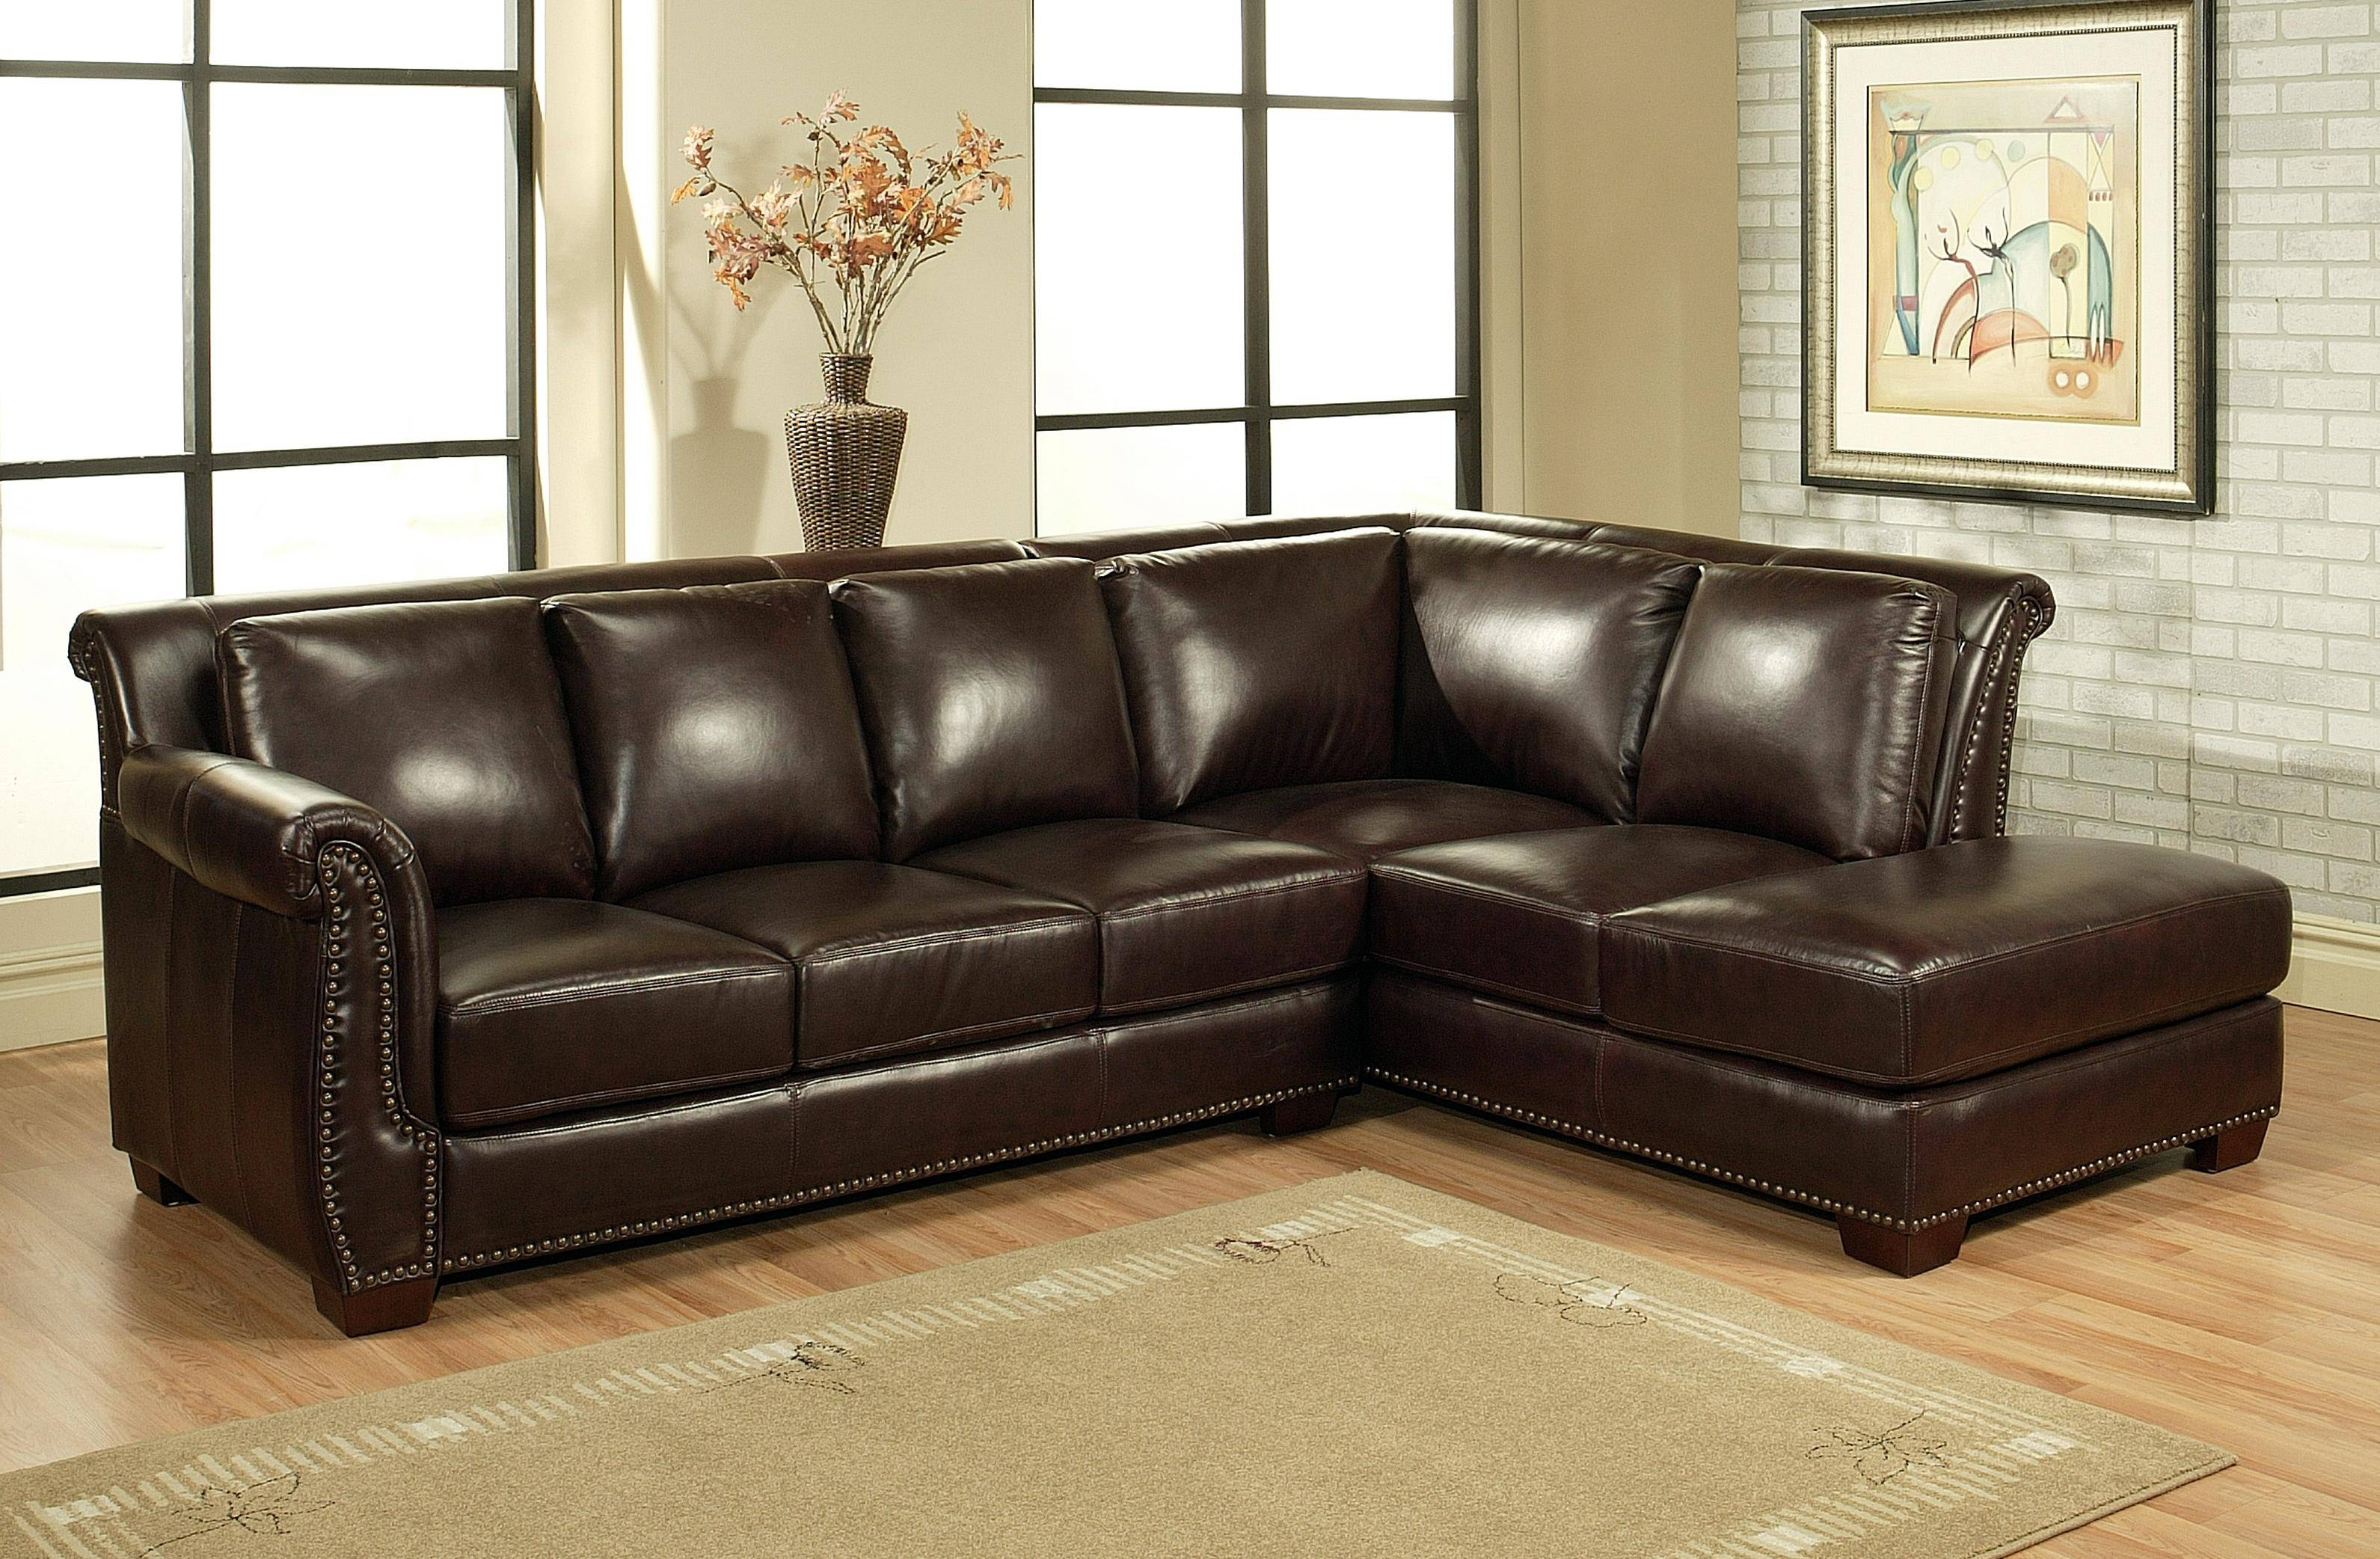 Furniture: Comfortable Modular Sectional Sofa For Modern Living within Elegant Sectional Sofa (Image 19 of 25)